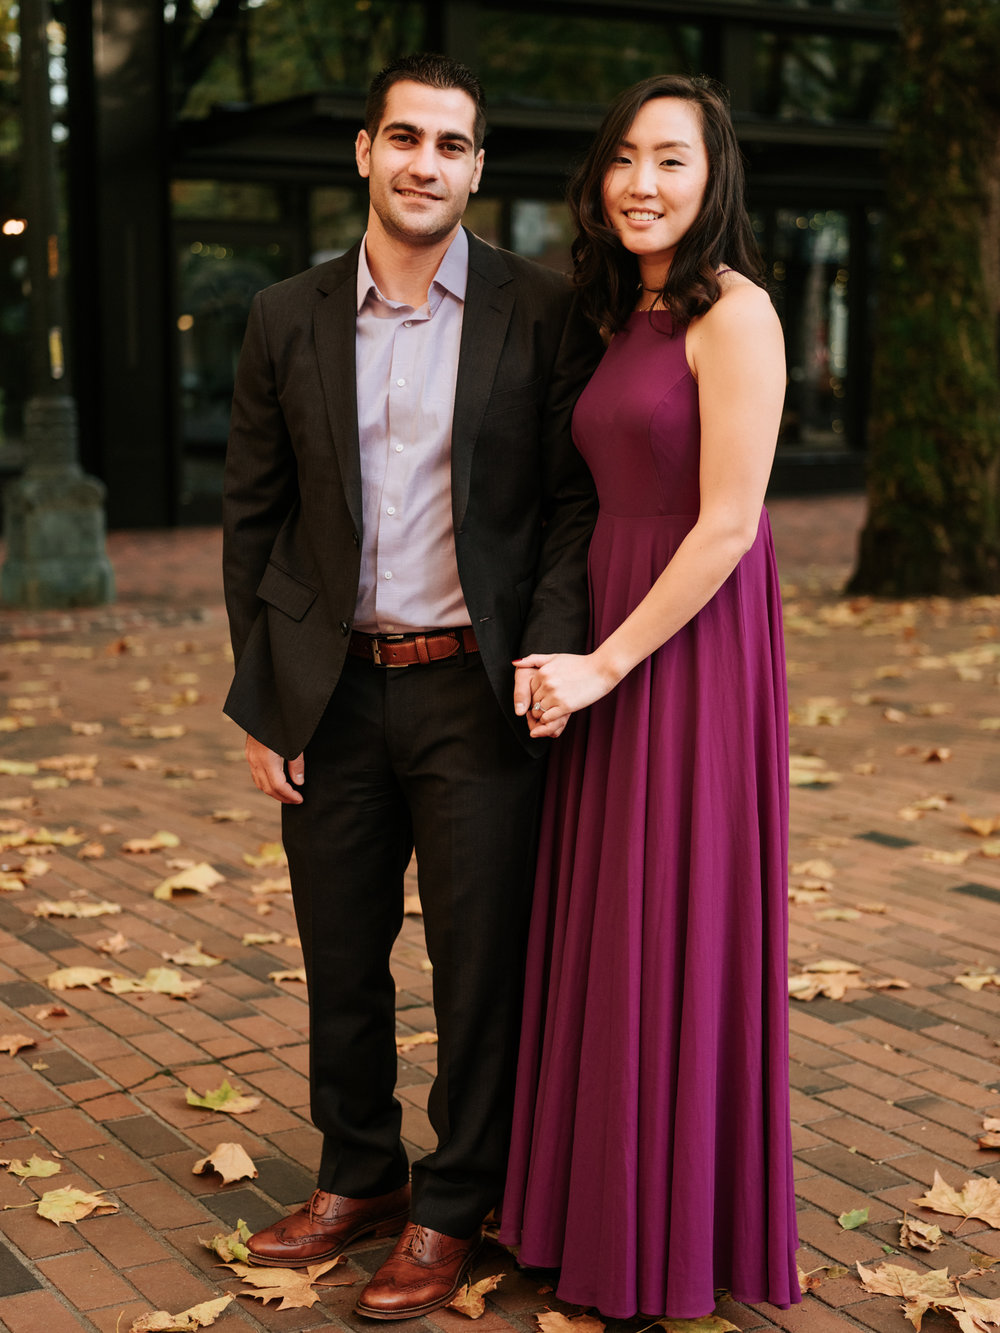 Seattle Engagement Photographer_Stolen Glimpses 17.jpg